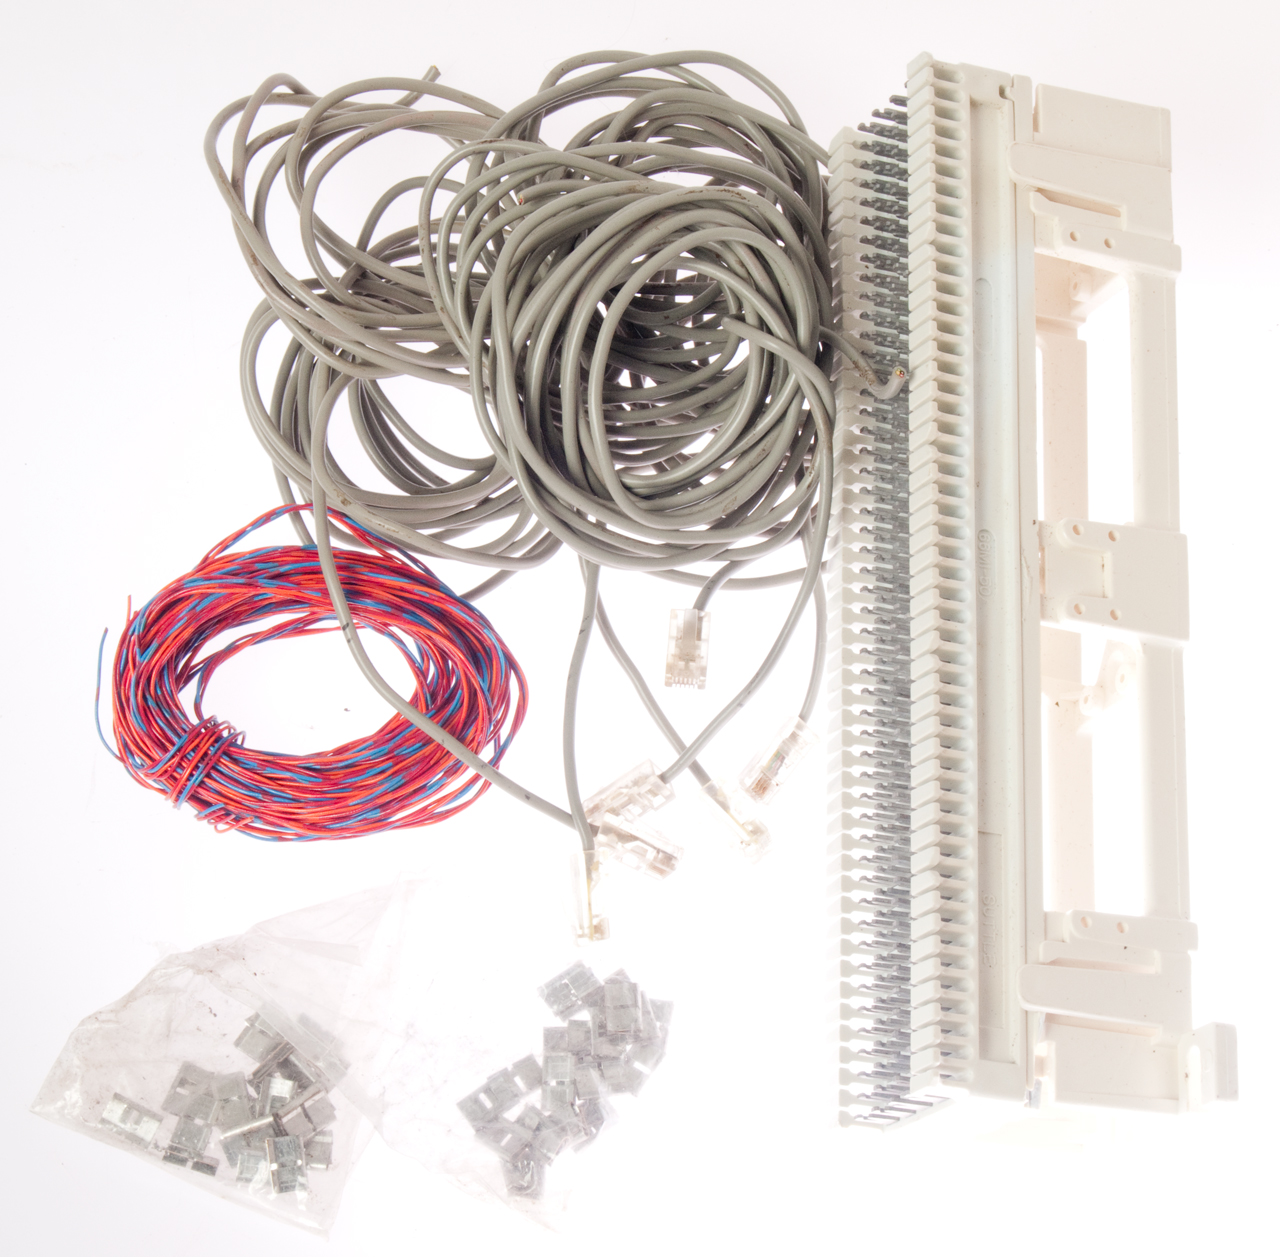 Panasonic Kx Ta824 Telephone System Down Block Besides Rj45 Wiring Diagram On Cat5 Home 66m1 50 Punch 89 Bracket And Related Parts 6 Each Solid Wire